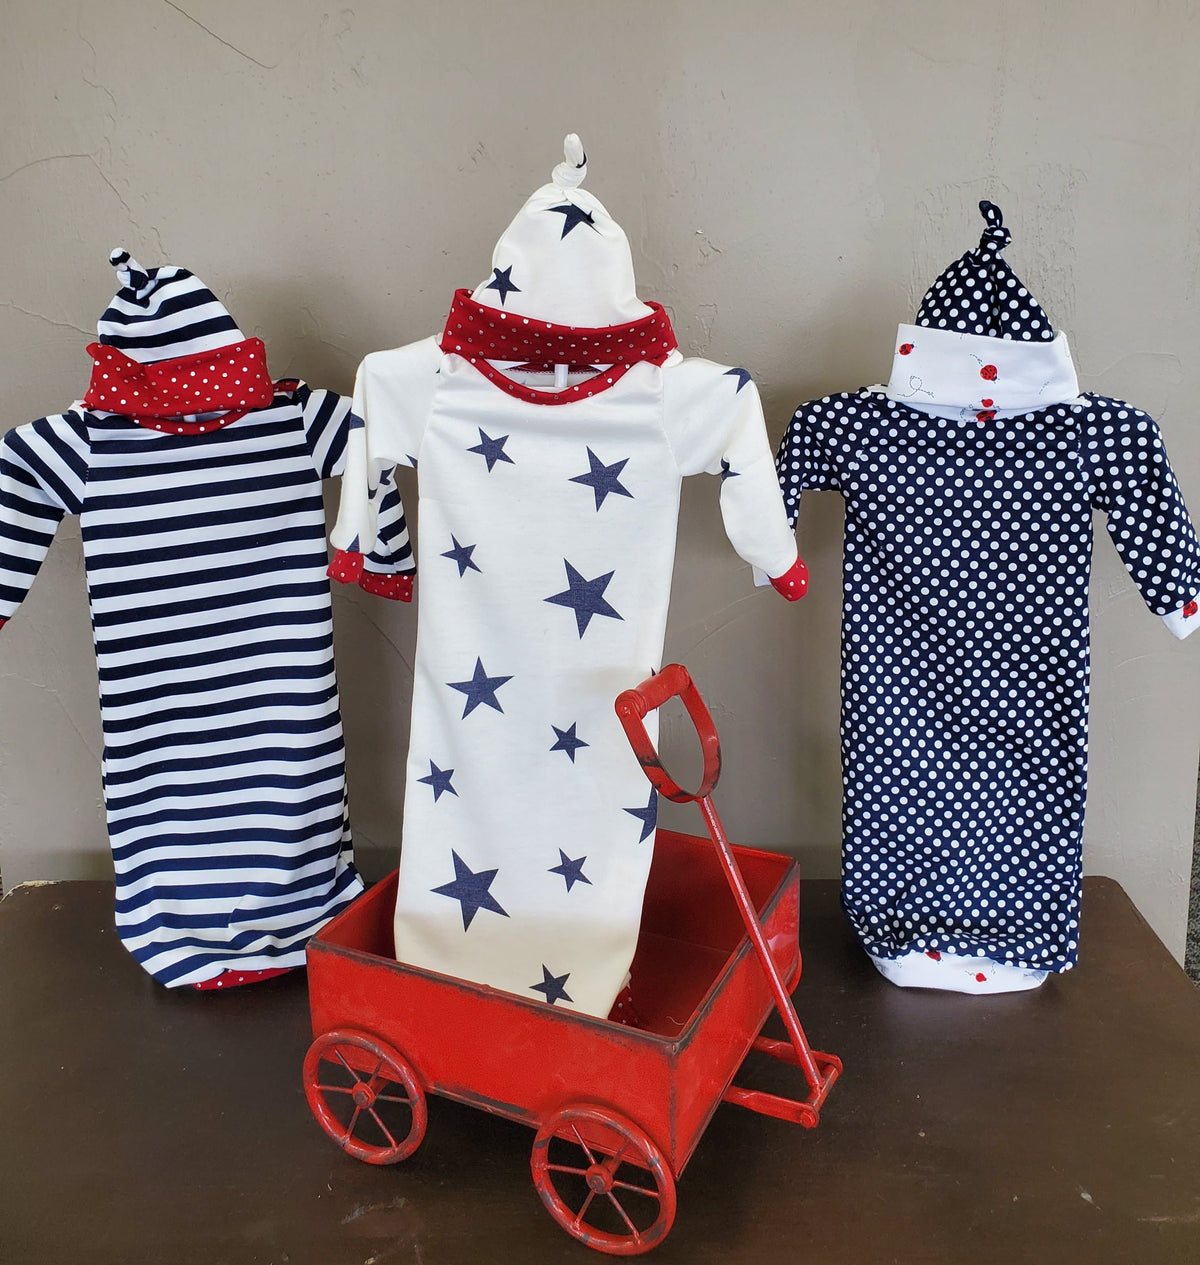 NEW DESIGN -Baby Gown - 4th of July Patriotic Going Home Gown Outfit